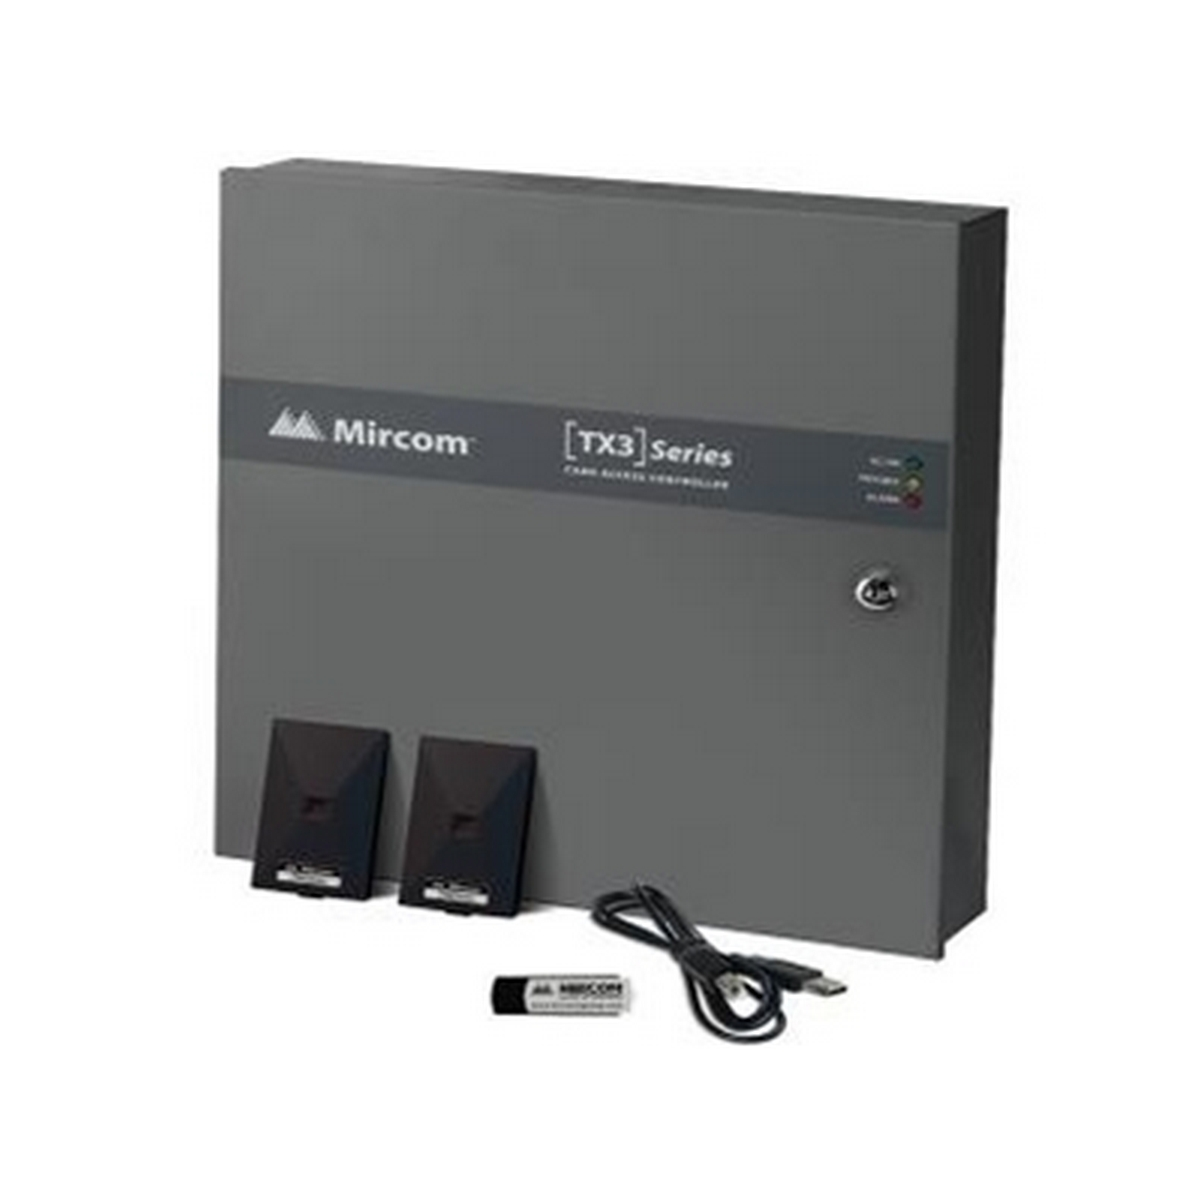 Mircom's TX3-CX-2K-A is a powerful hybrid IP and RS-485 networked two door controller that will manage up to 126 doors using the RS-485 network.